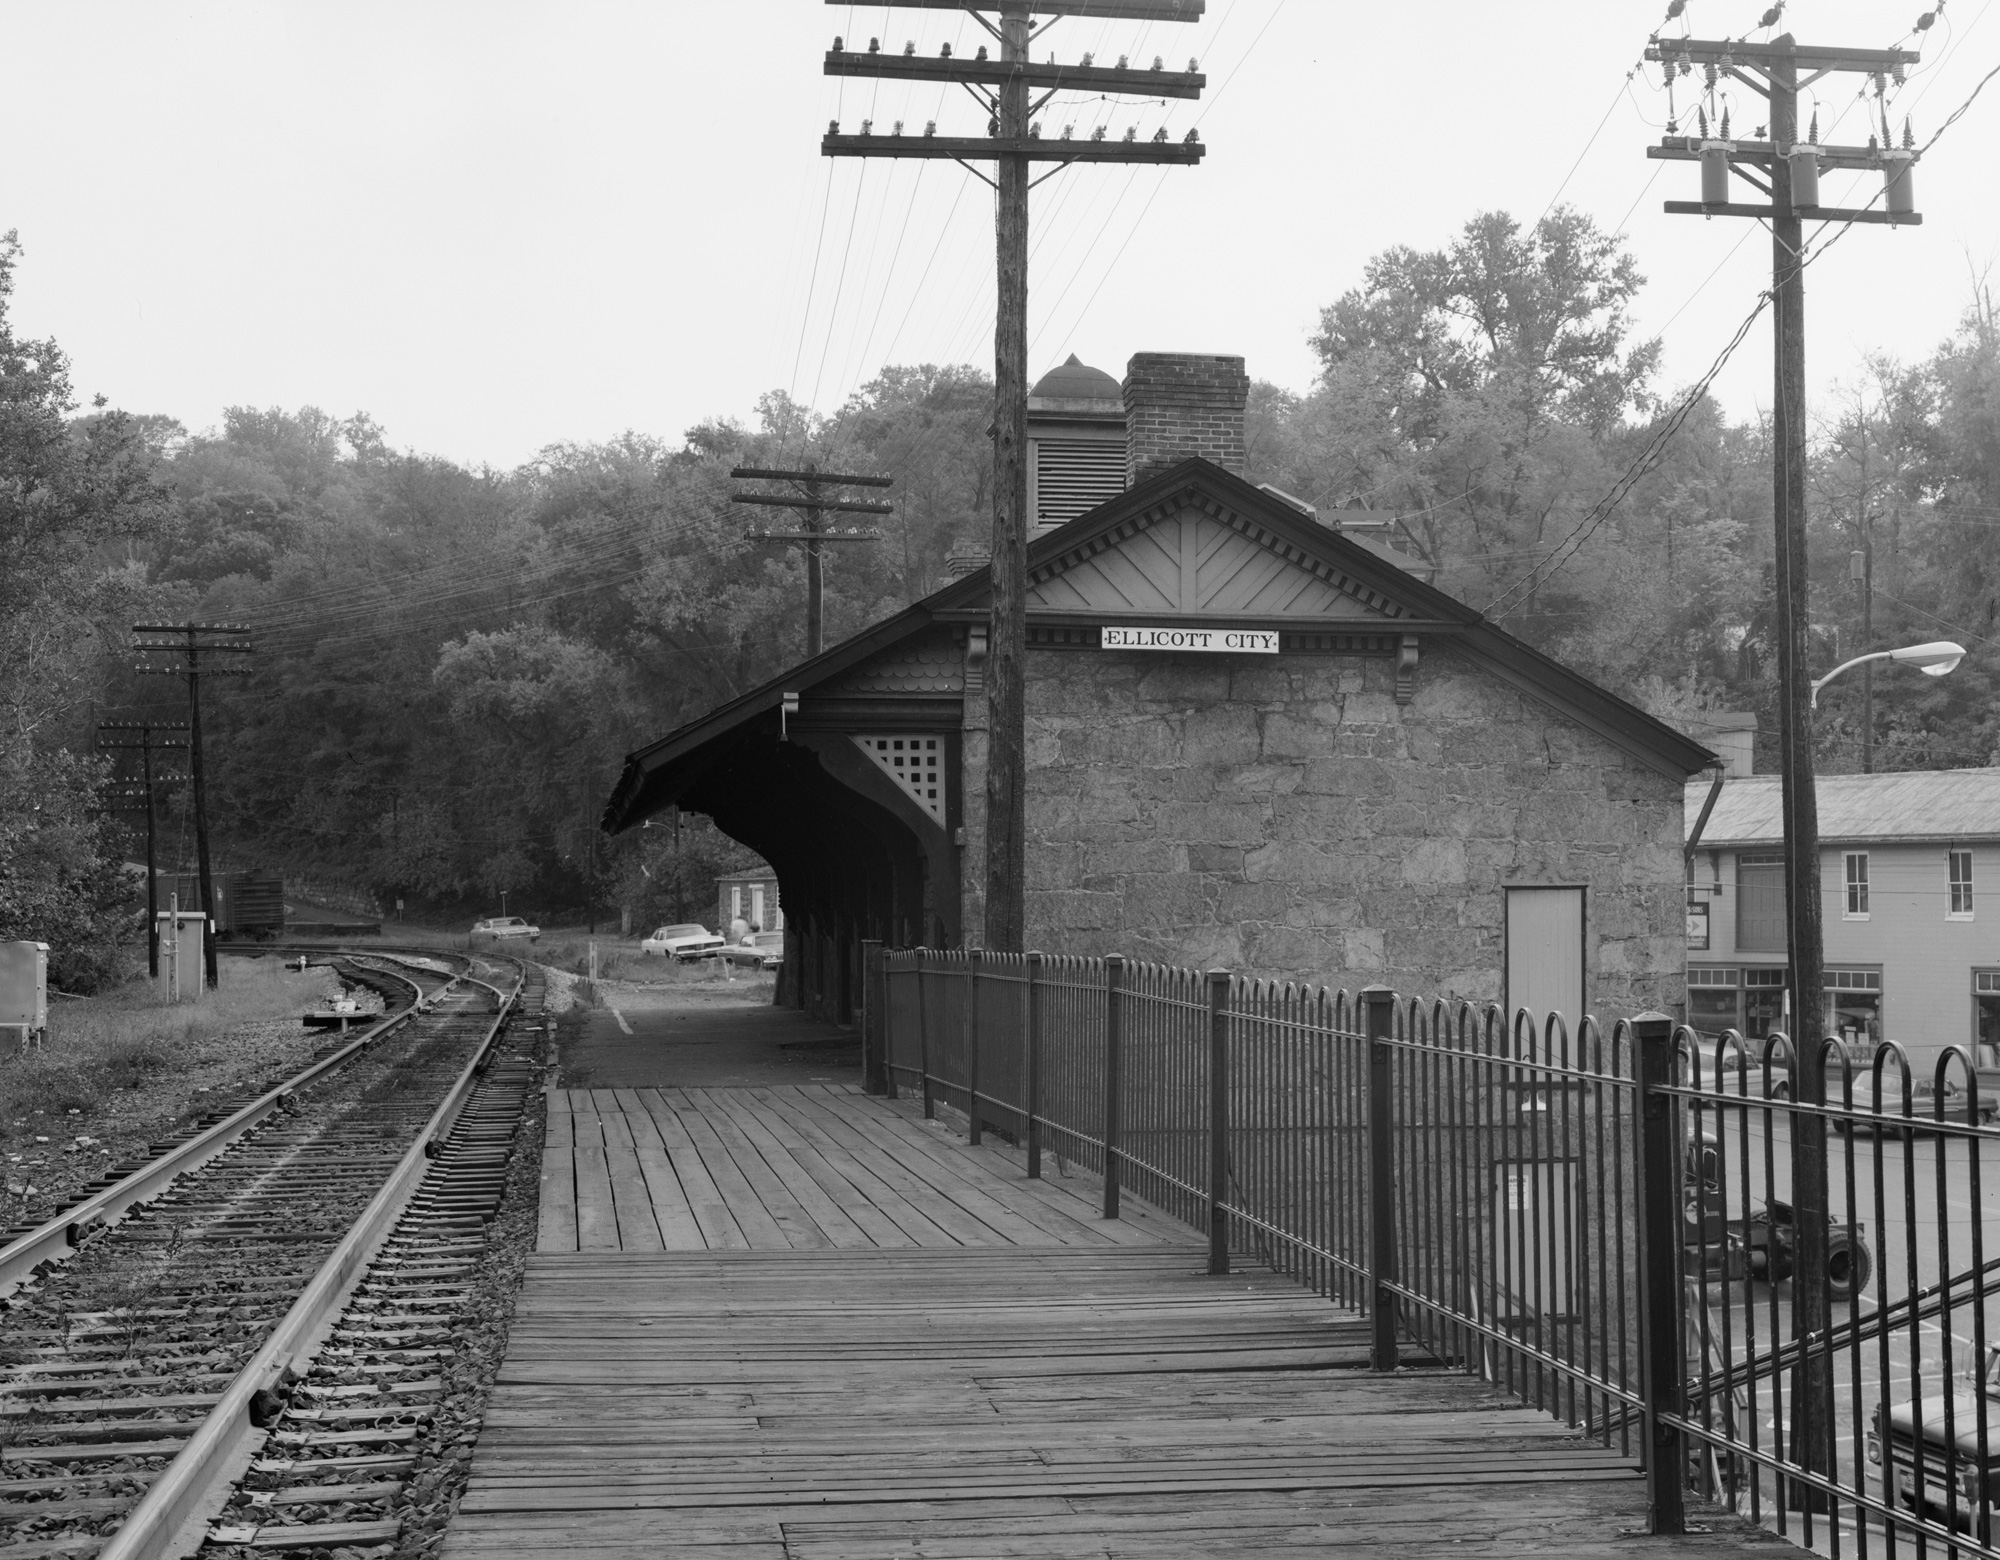 The Ellicott City Depot